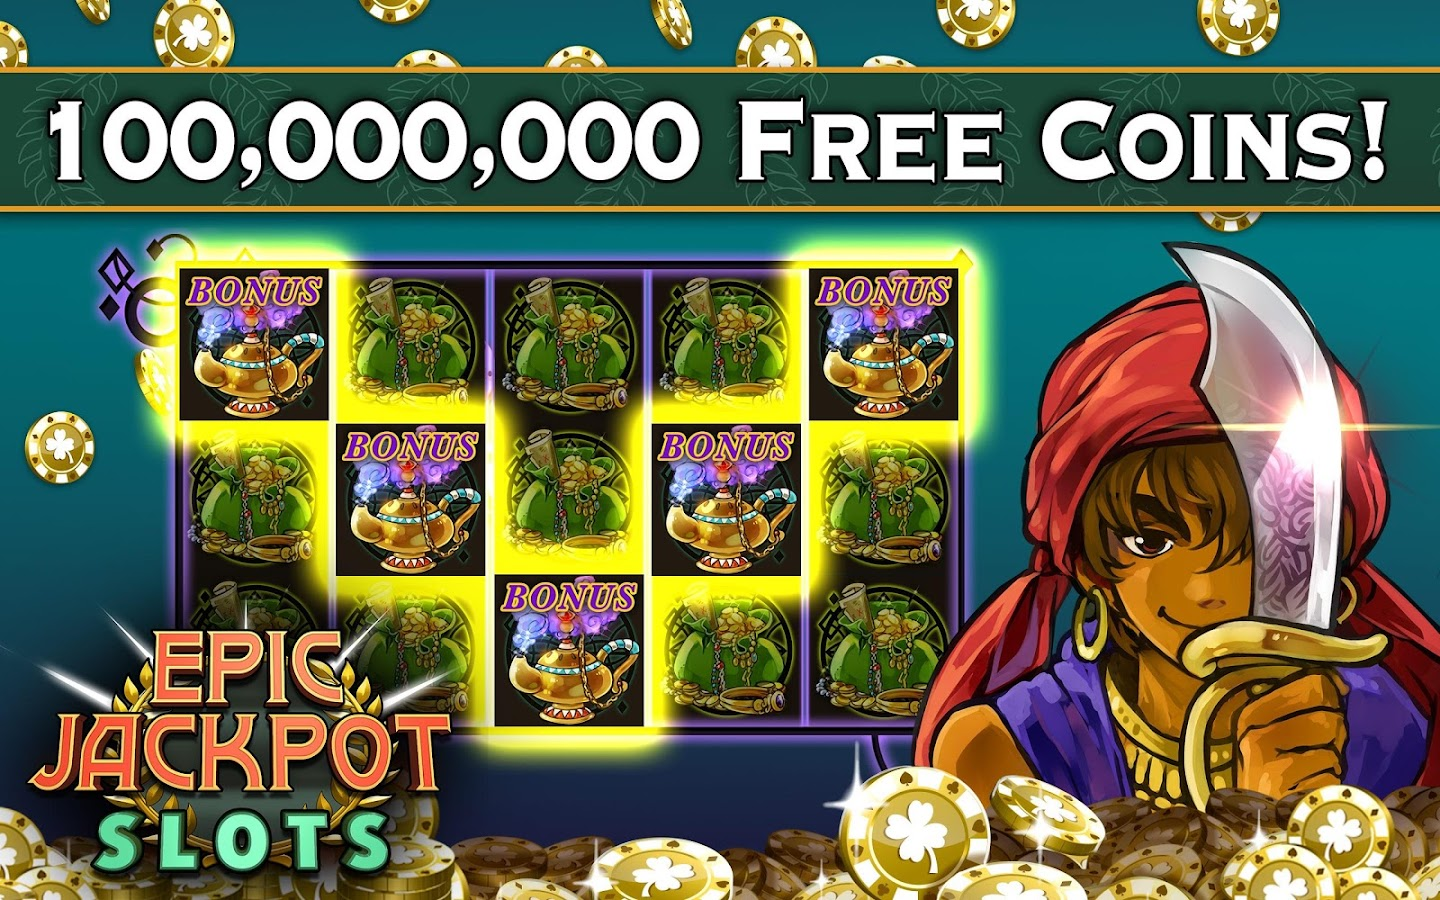 Jackpot Vault Slot Machine - Play it Now for Free